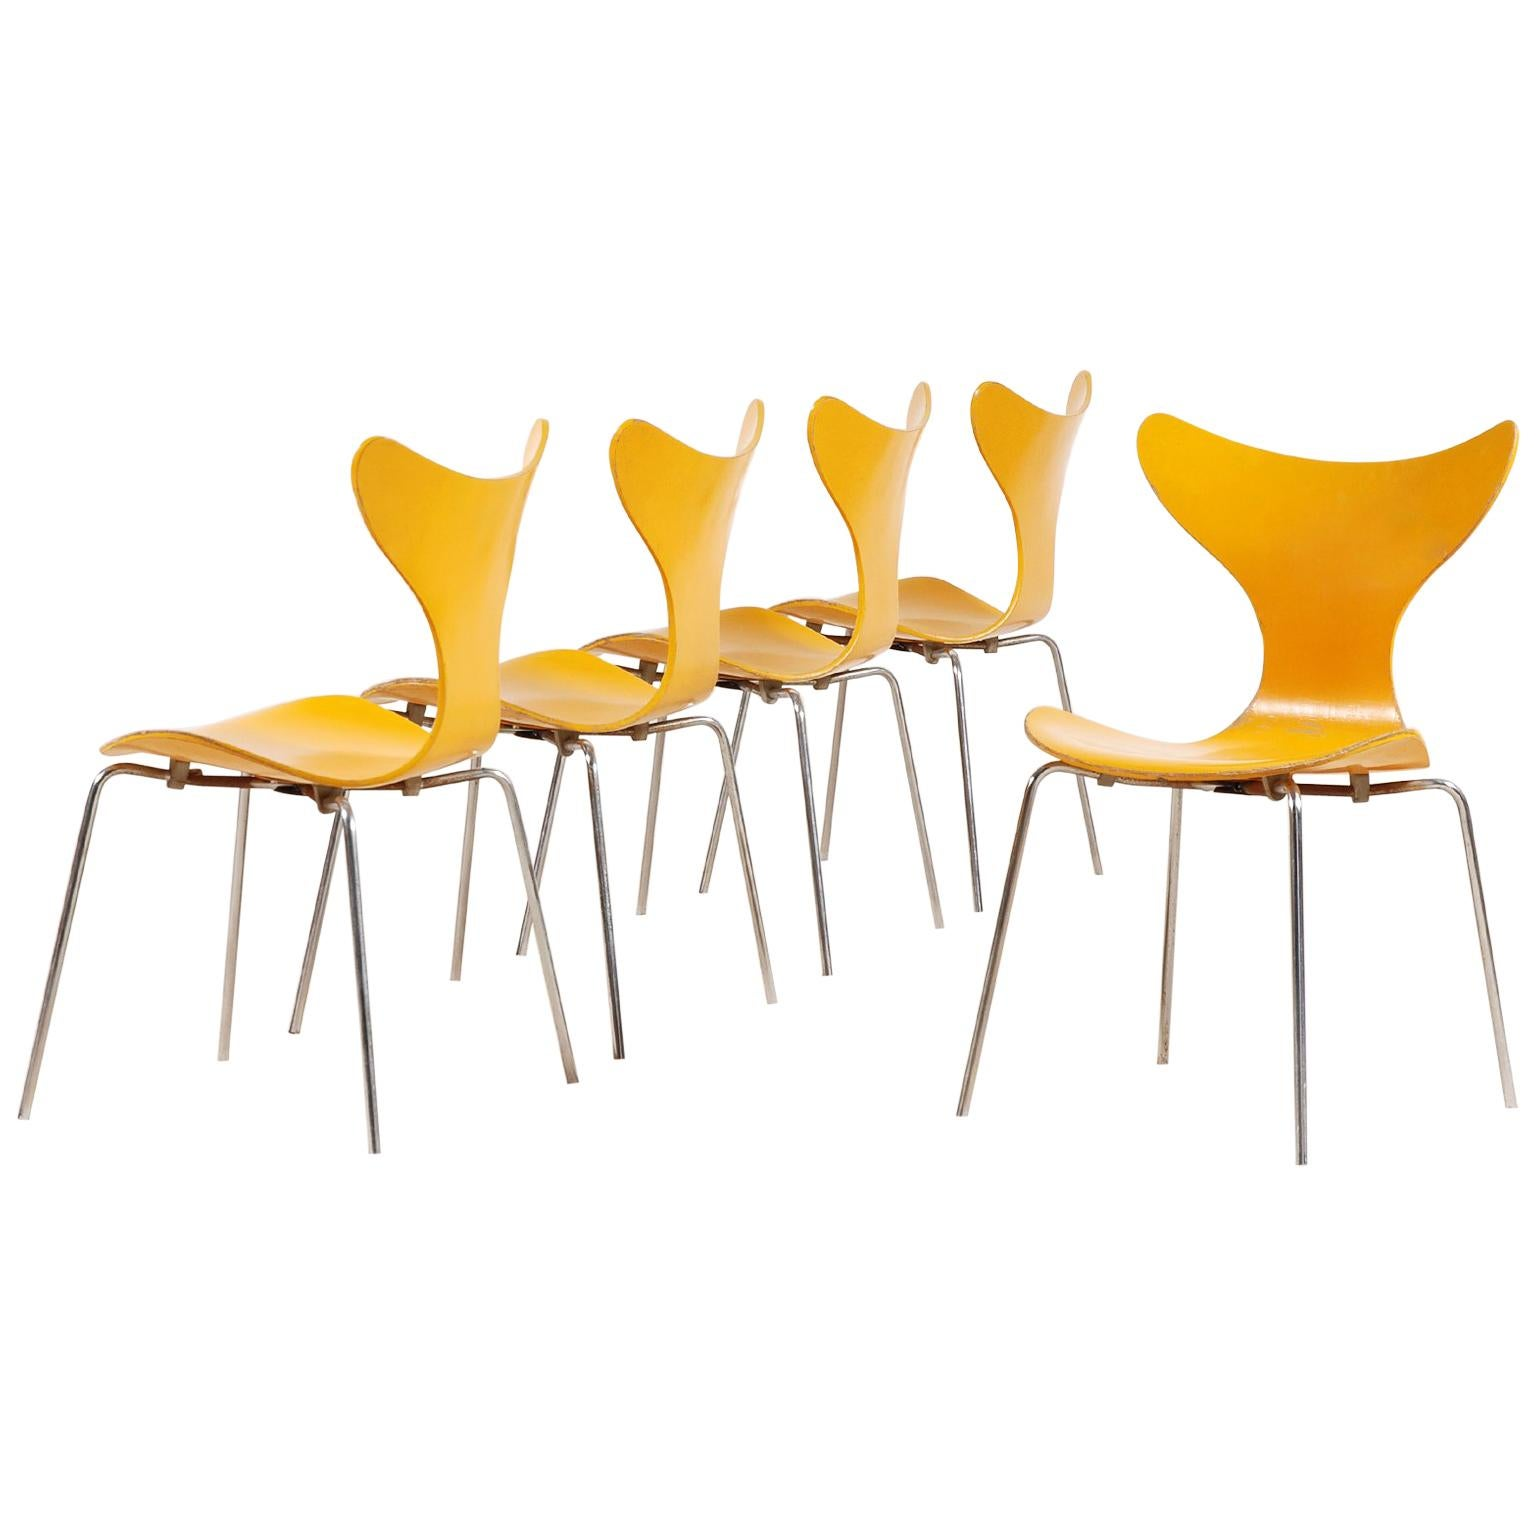 Arne Jacobsen, Set of 5 Lily Chairs for Fritz Hansen, 1968